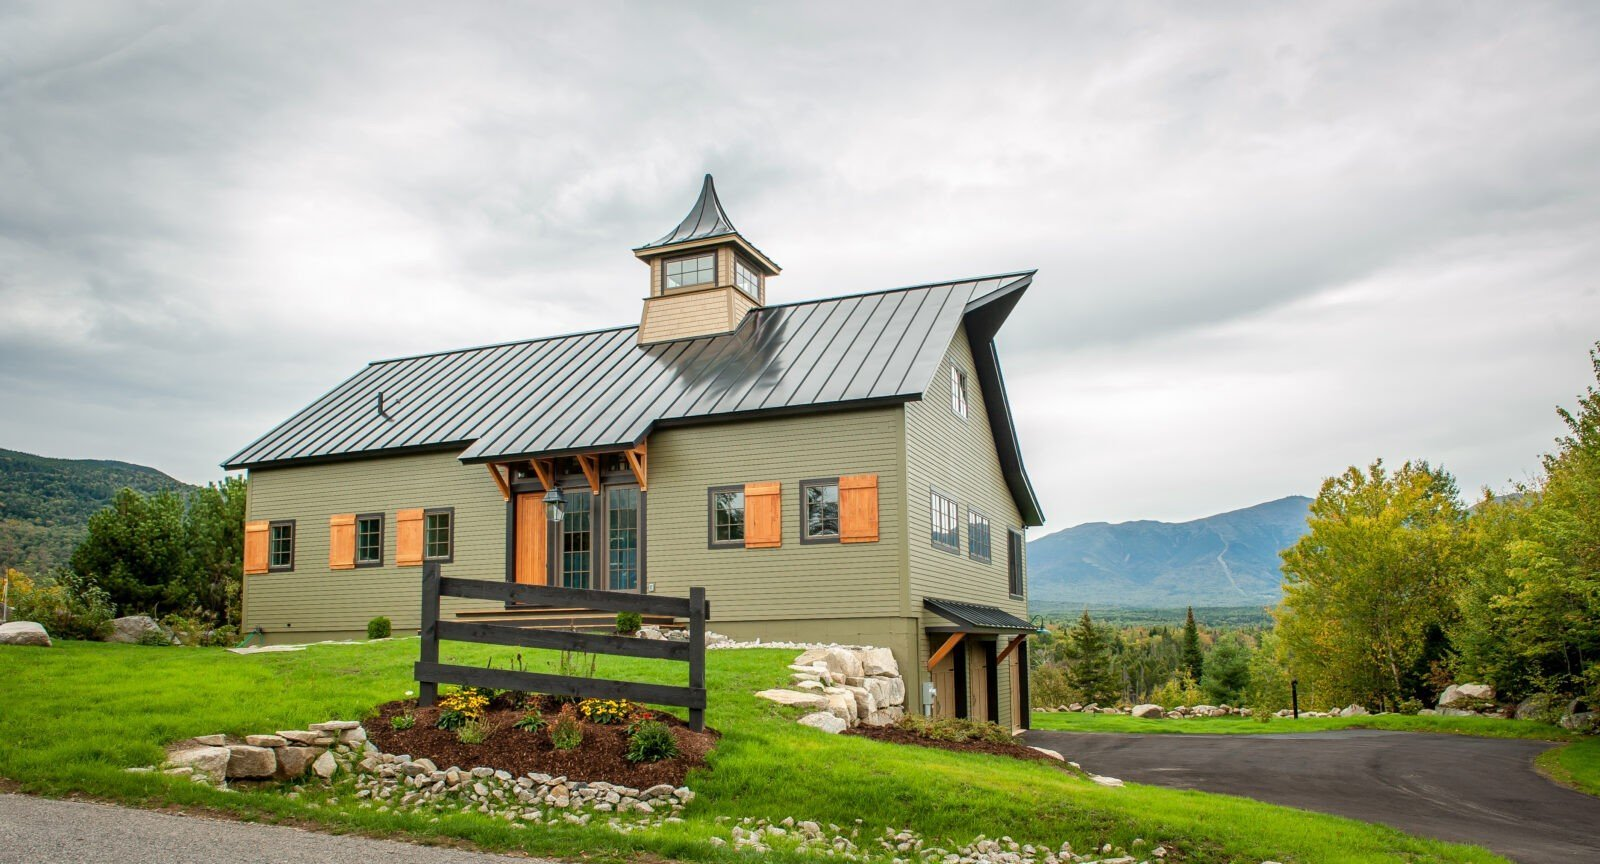 Top notch barn home plans from the ybh design team for Small barn house plans